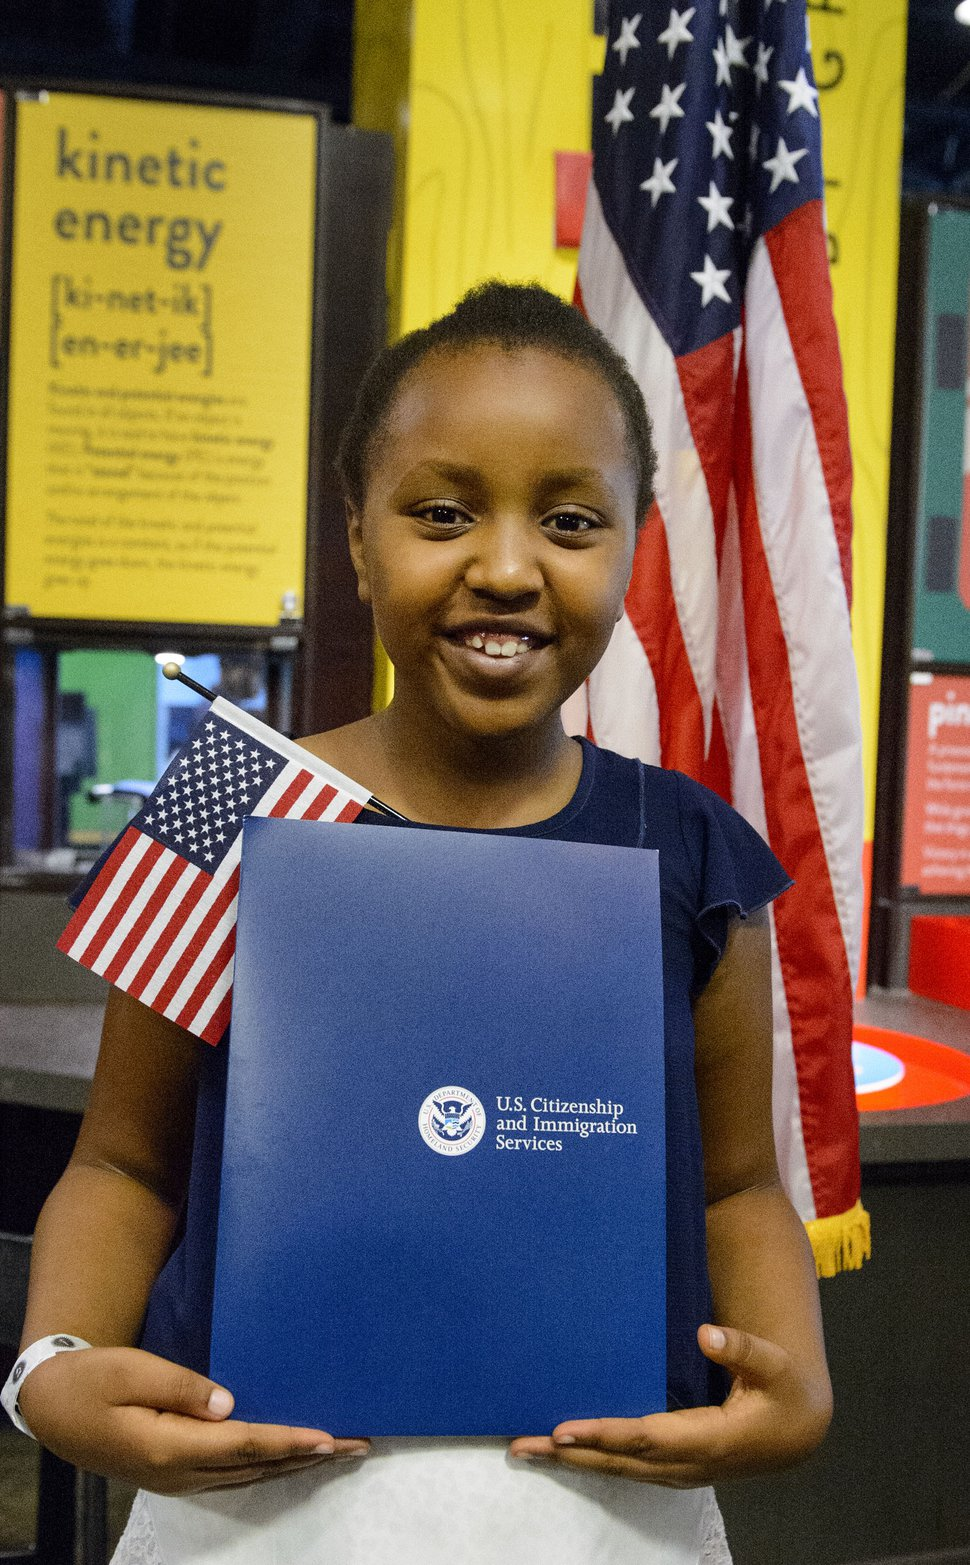 (Steve Griffin | The Salt Lake Tribune) Yguette Umutesi, age 9, smiles as she gets her picture taken as children, ages 7 to 14, had a very special day at Discovery Gateway: the ChildrenÕs Museum of Utah Monday when they received citizenship certificates from the Salt Lake County and U.S. Citizenship and Immigration Services during the ceremony in Salt Lake City Monday August 7, 2017.